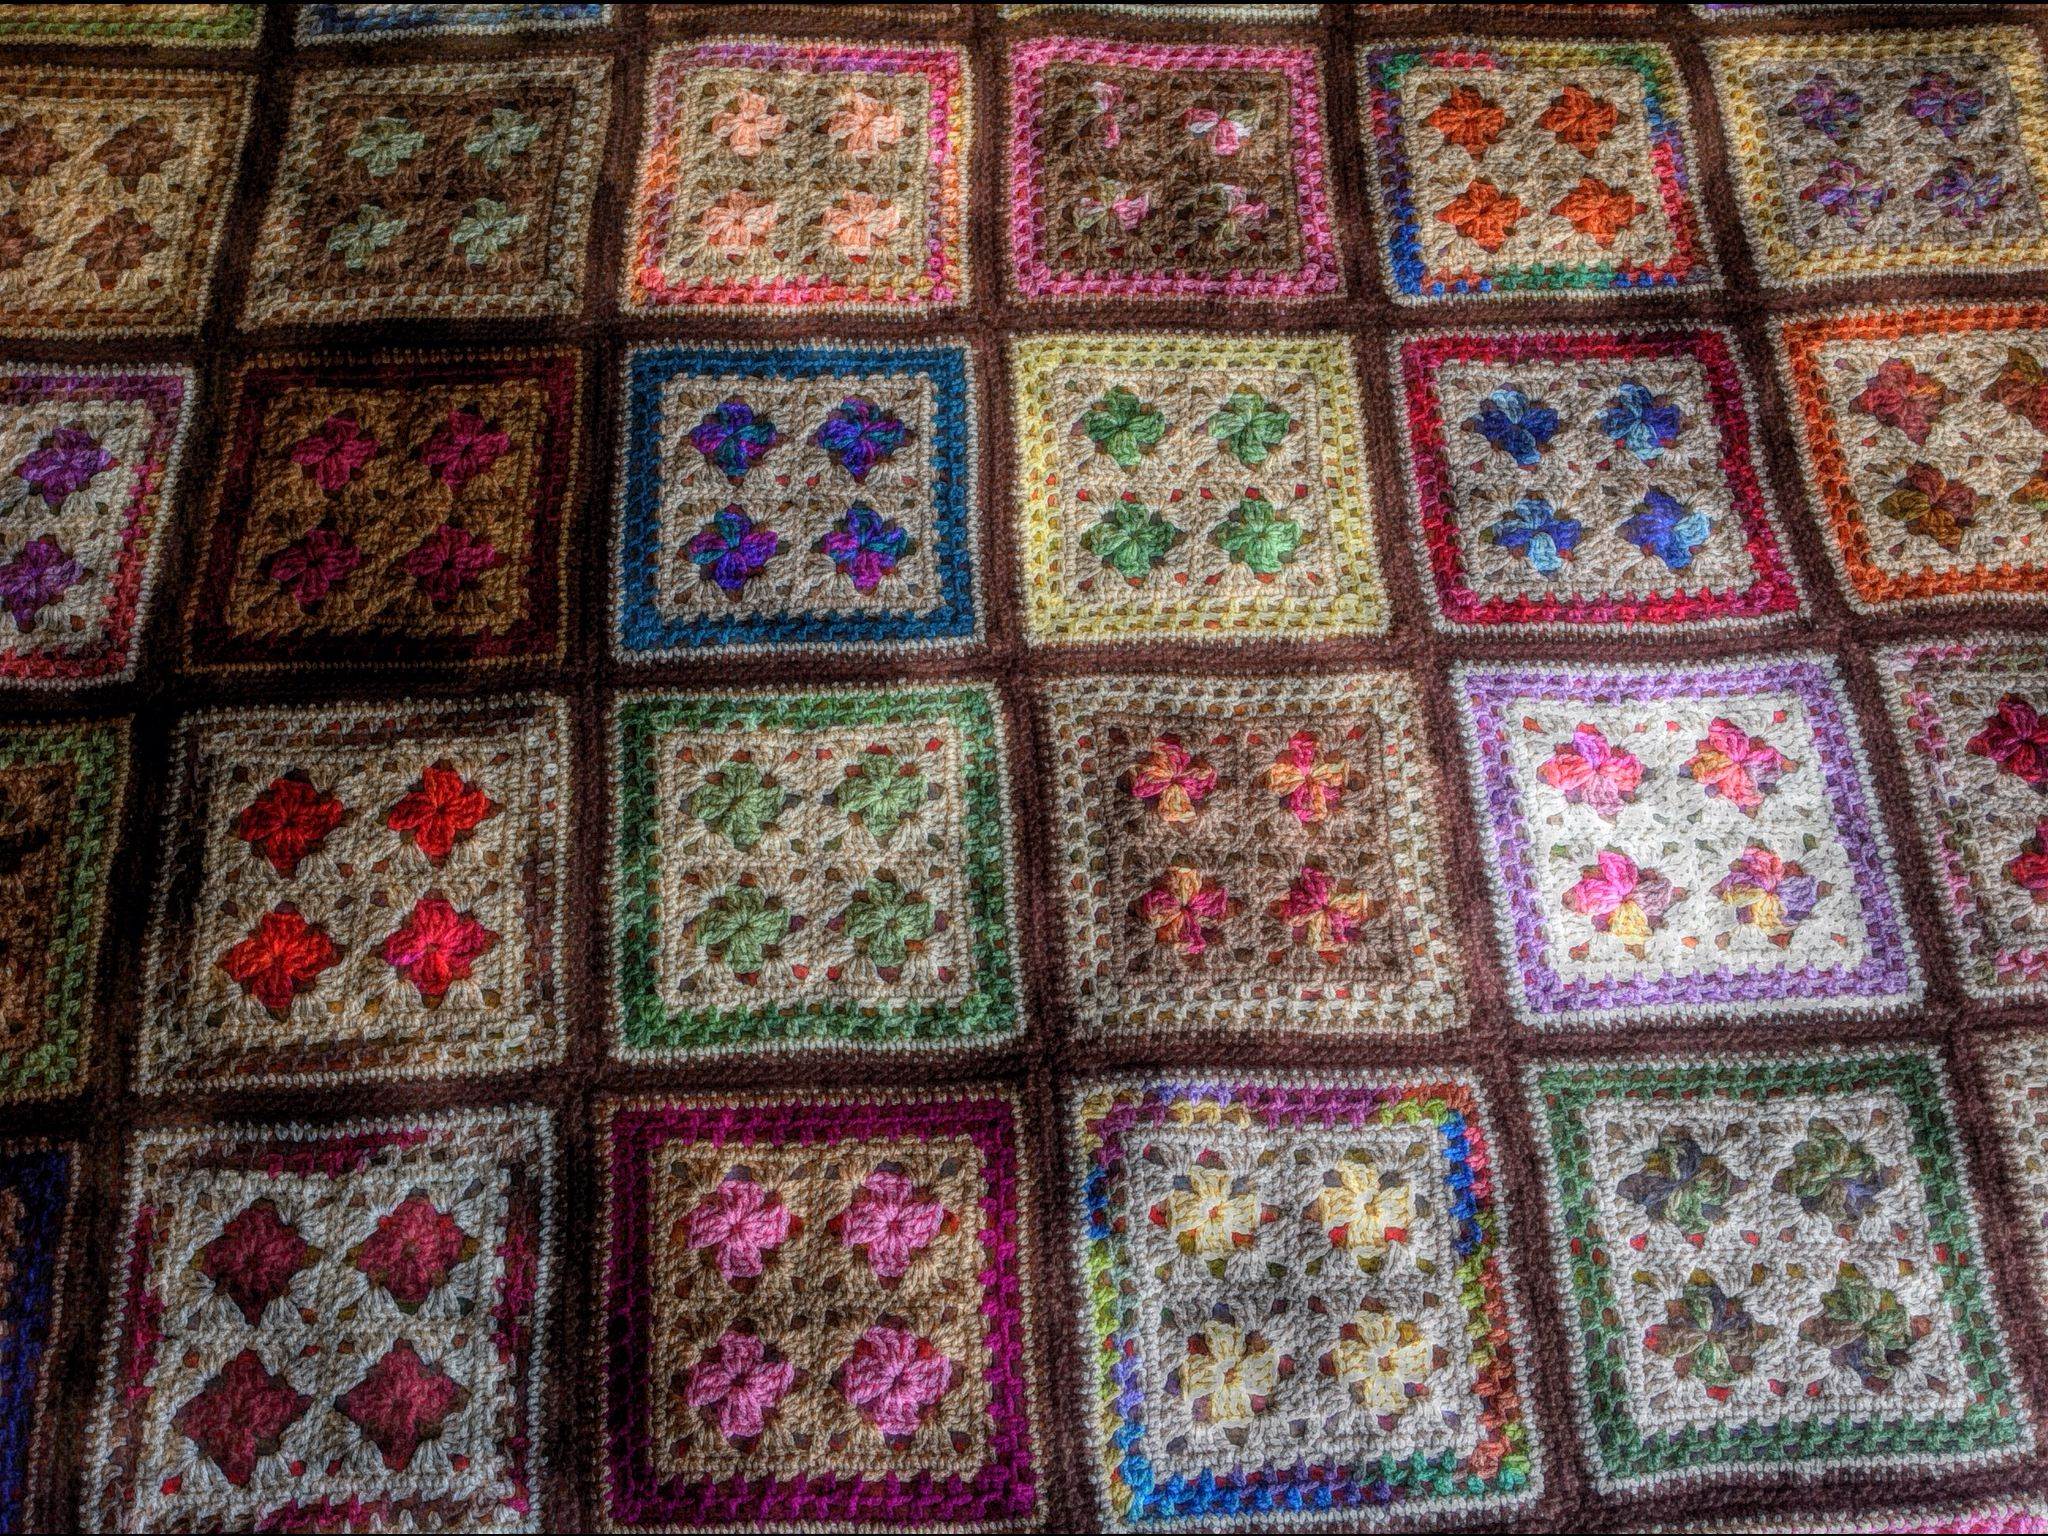 Stained Glass Crocheted Afghan Crochet Blankets & More ...